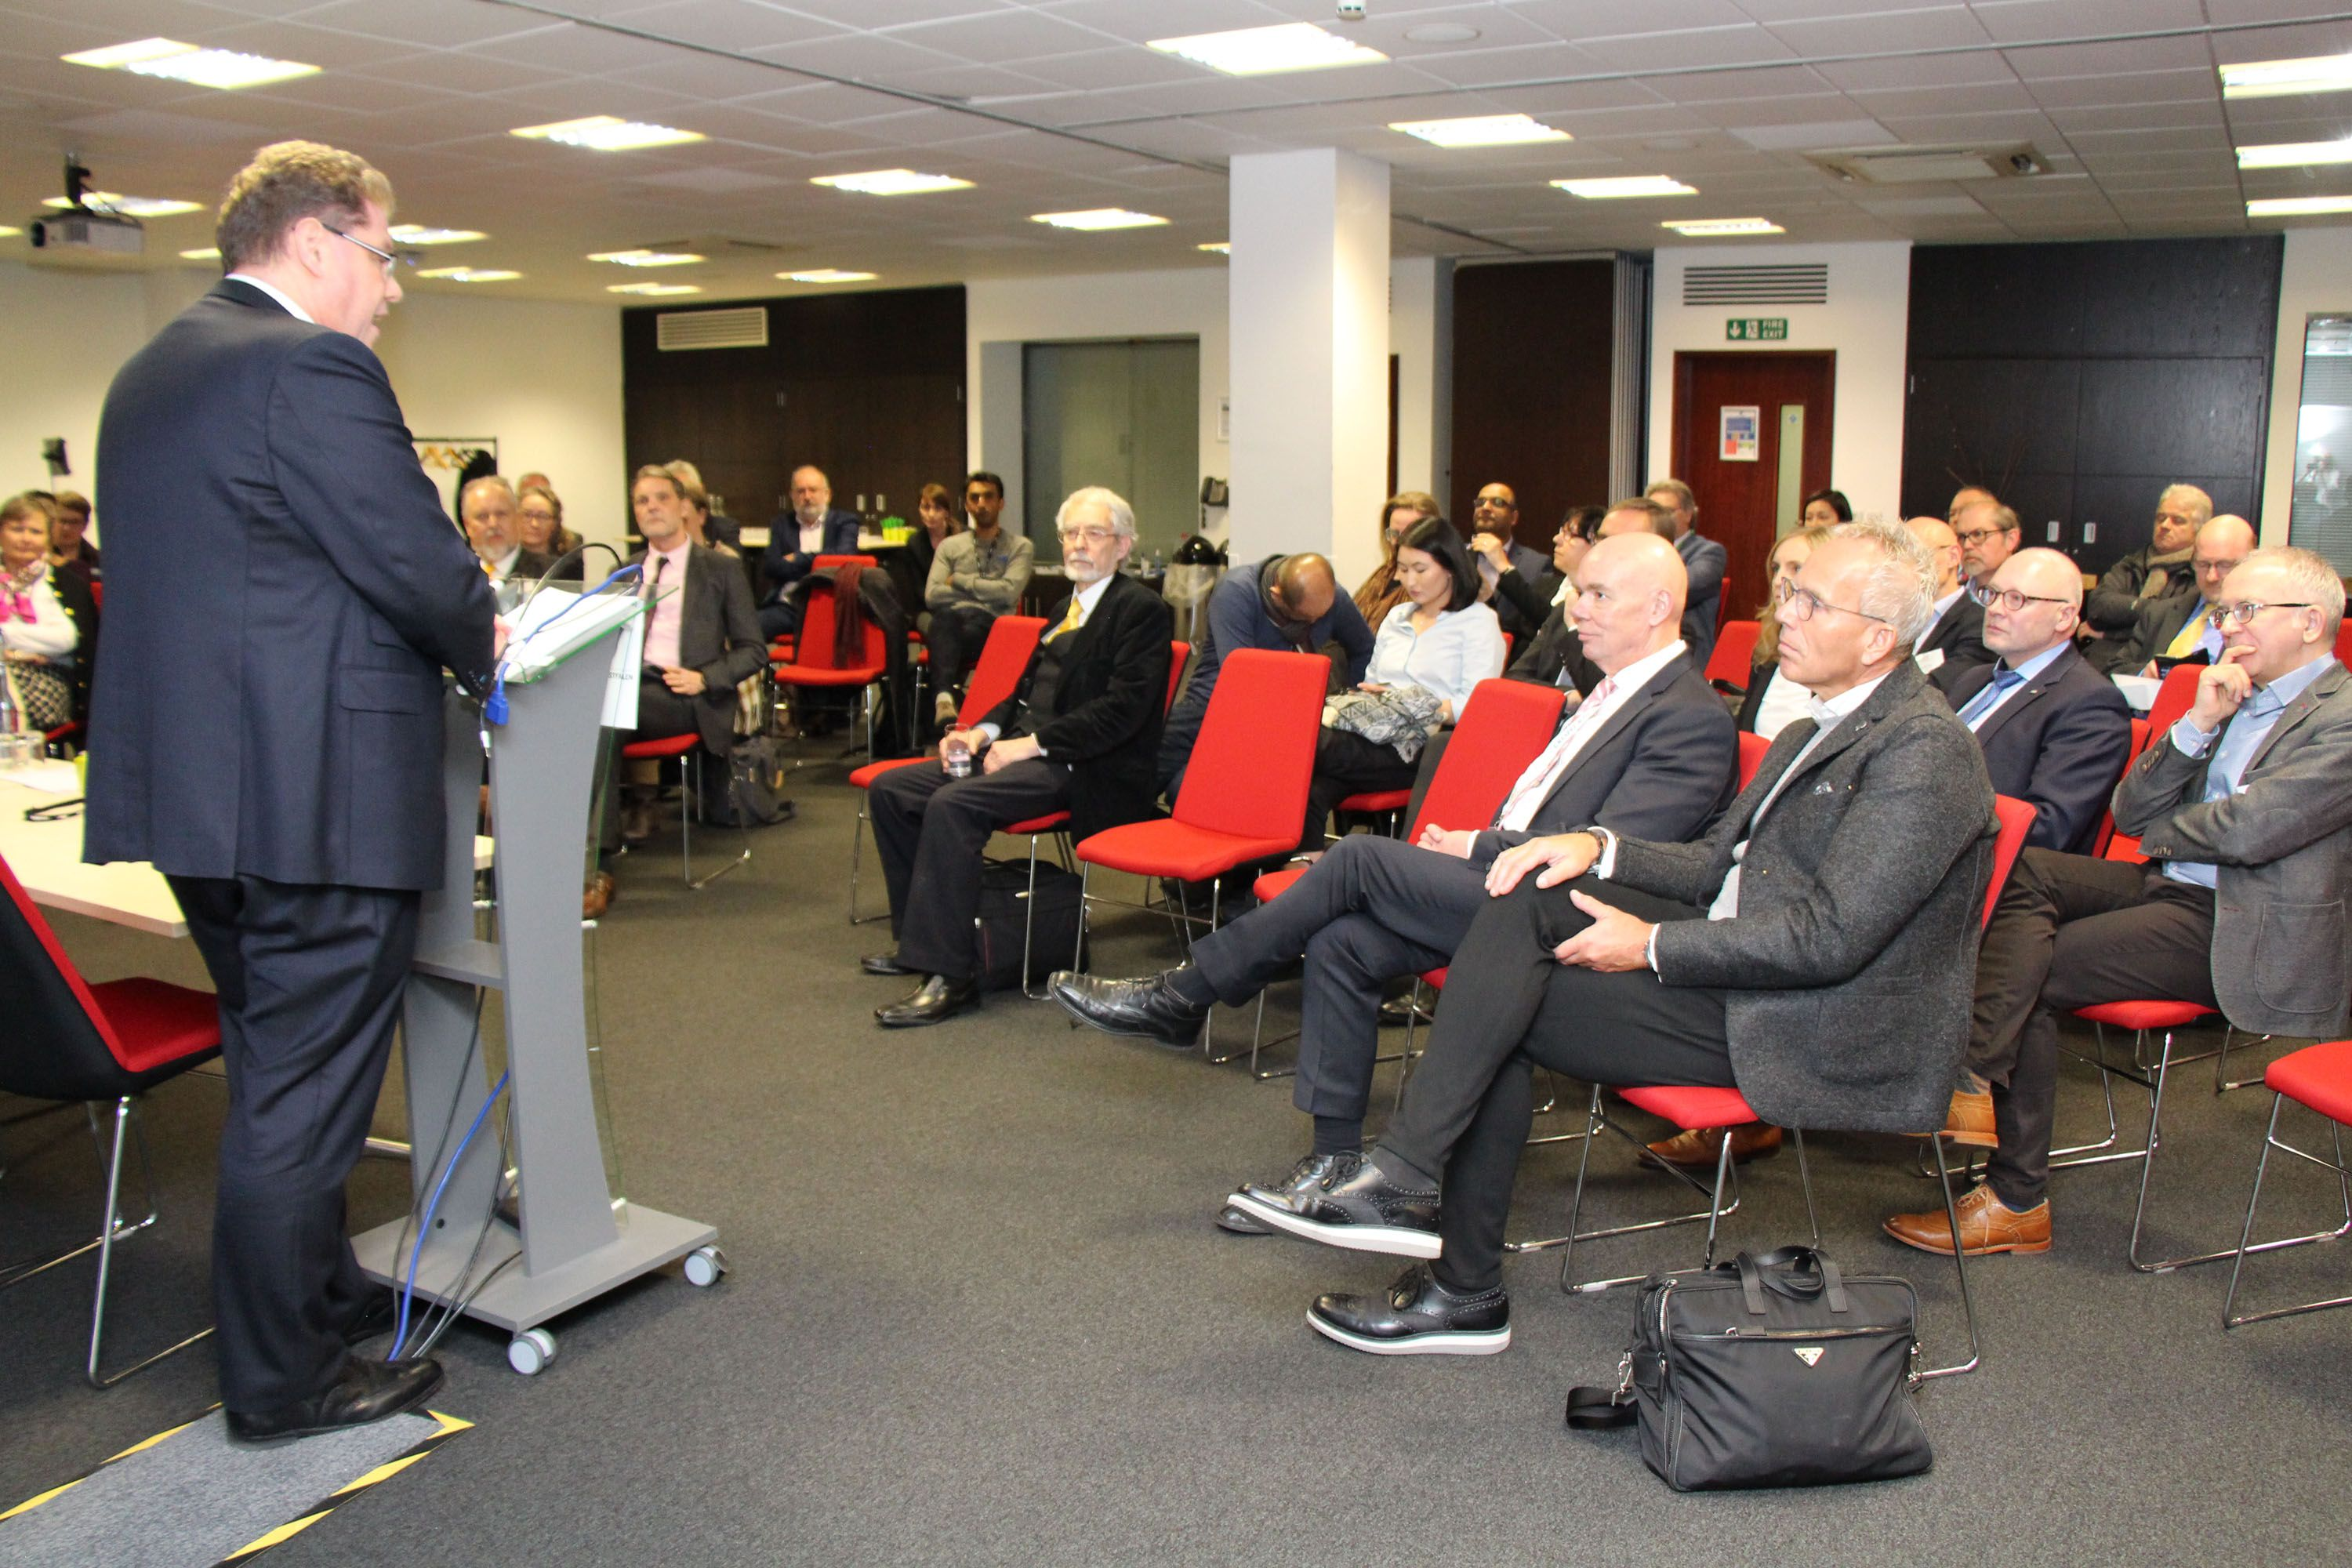 gds supports IHK delegation in economic exchange in Birmingham